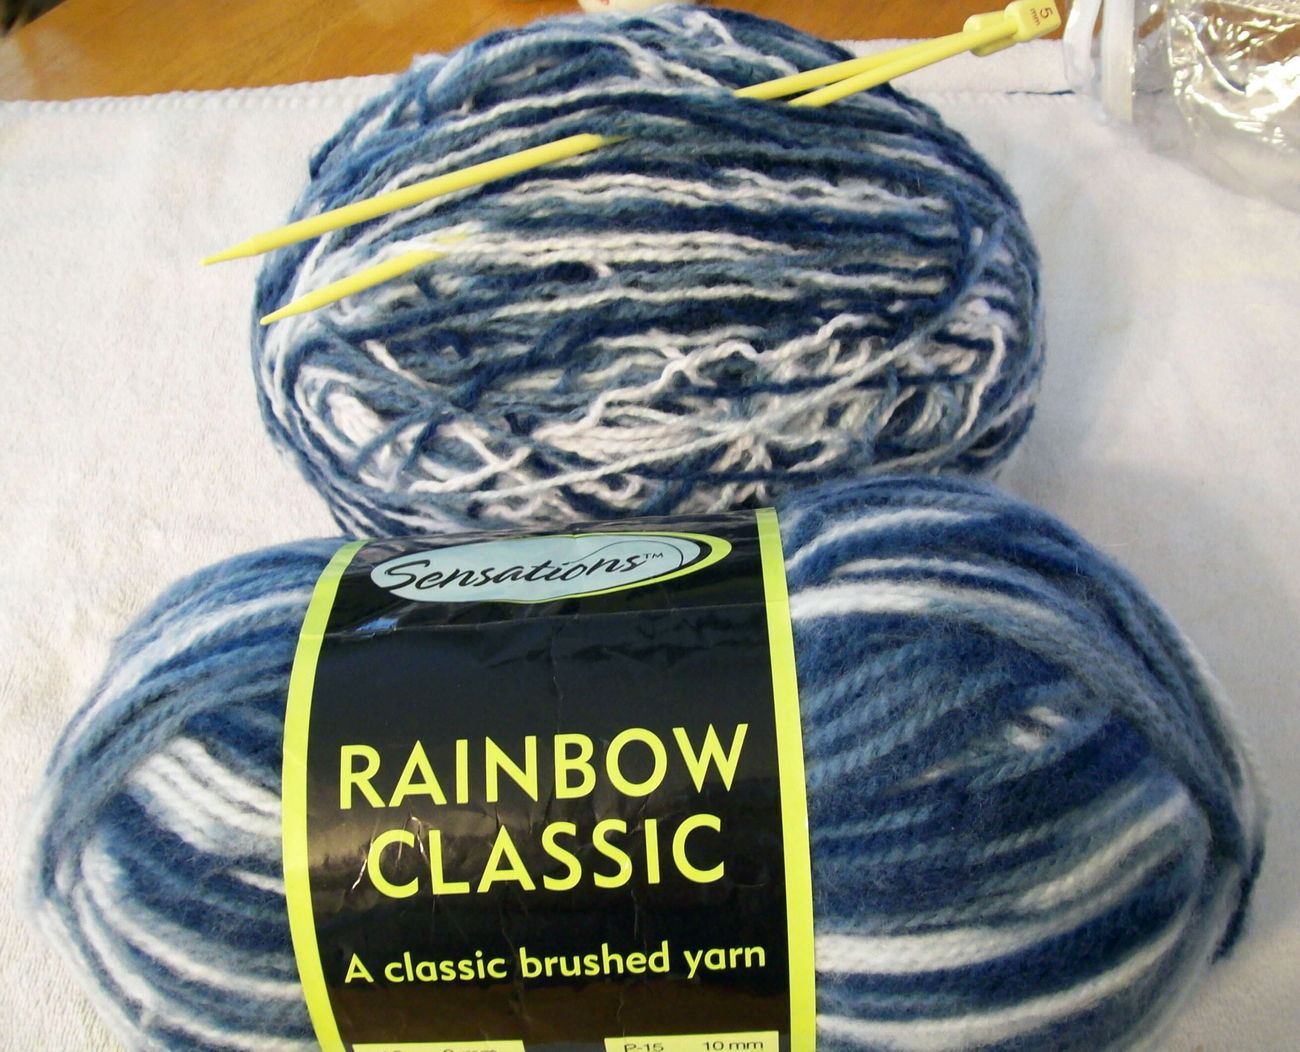 Sensations Rainbow Classic Yarn plus Knitting Needles